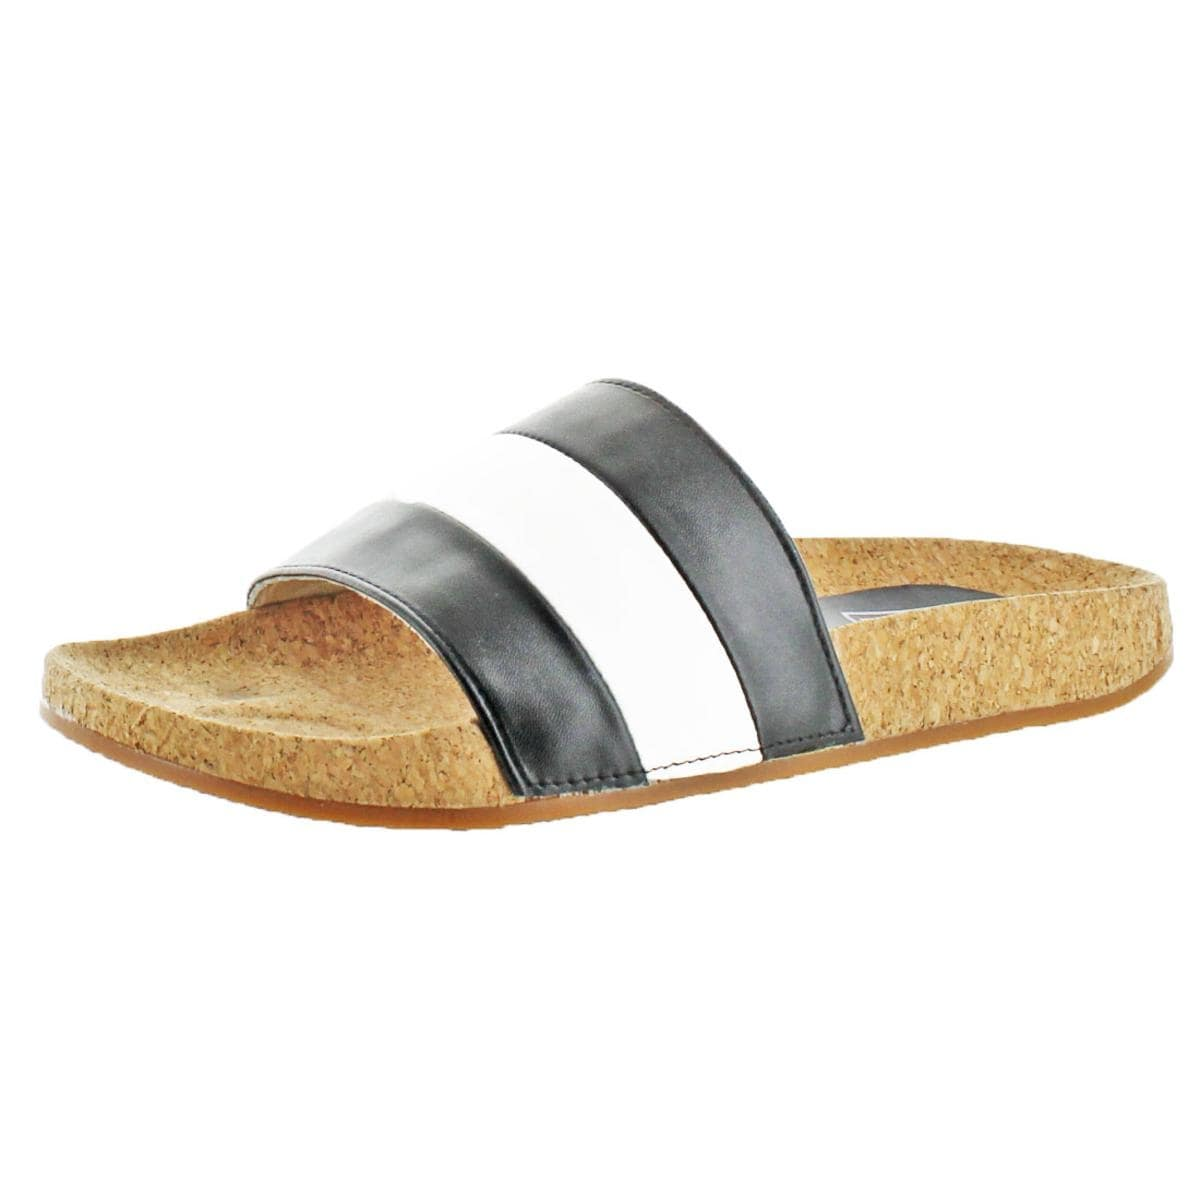 46c2ef18f Shop L4L by Lust for Life Womens Affect Slide Sandals Cork Casual - Free  Shipping On Orders Over  45 - Overstock - 21127333